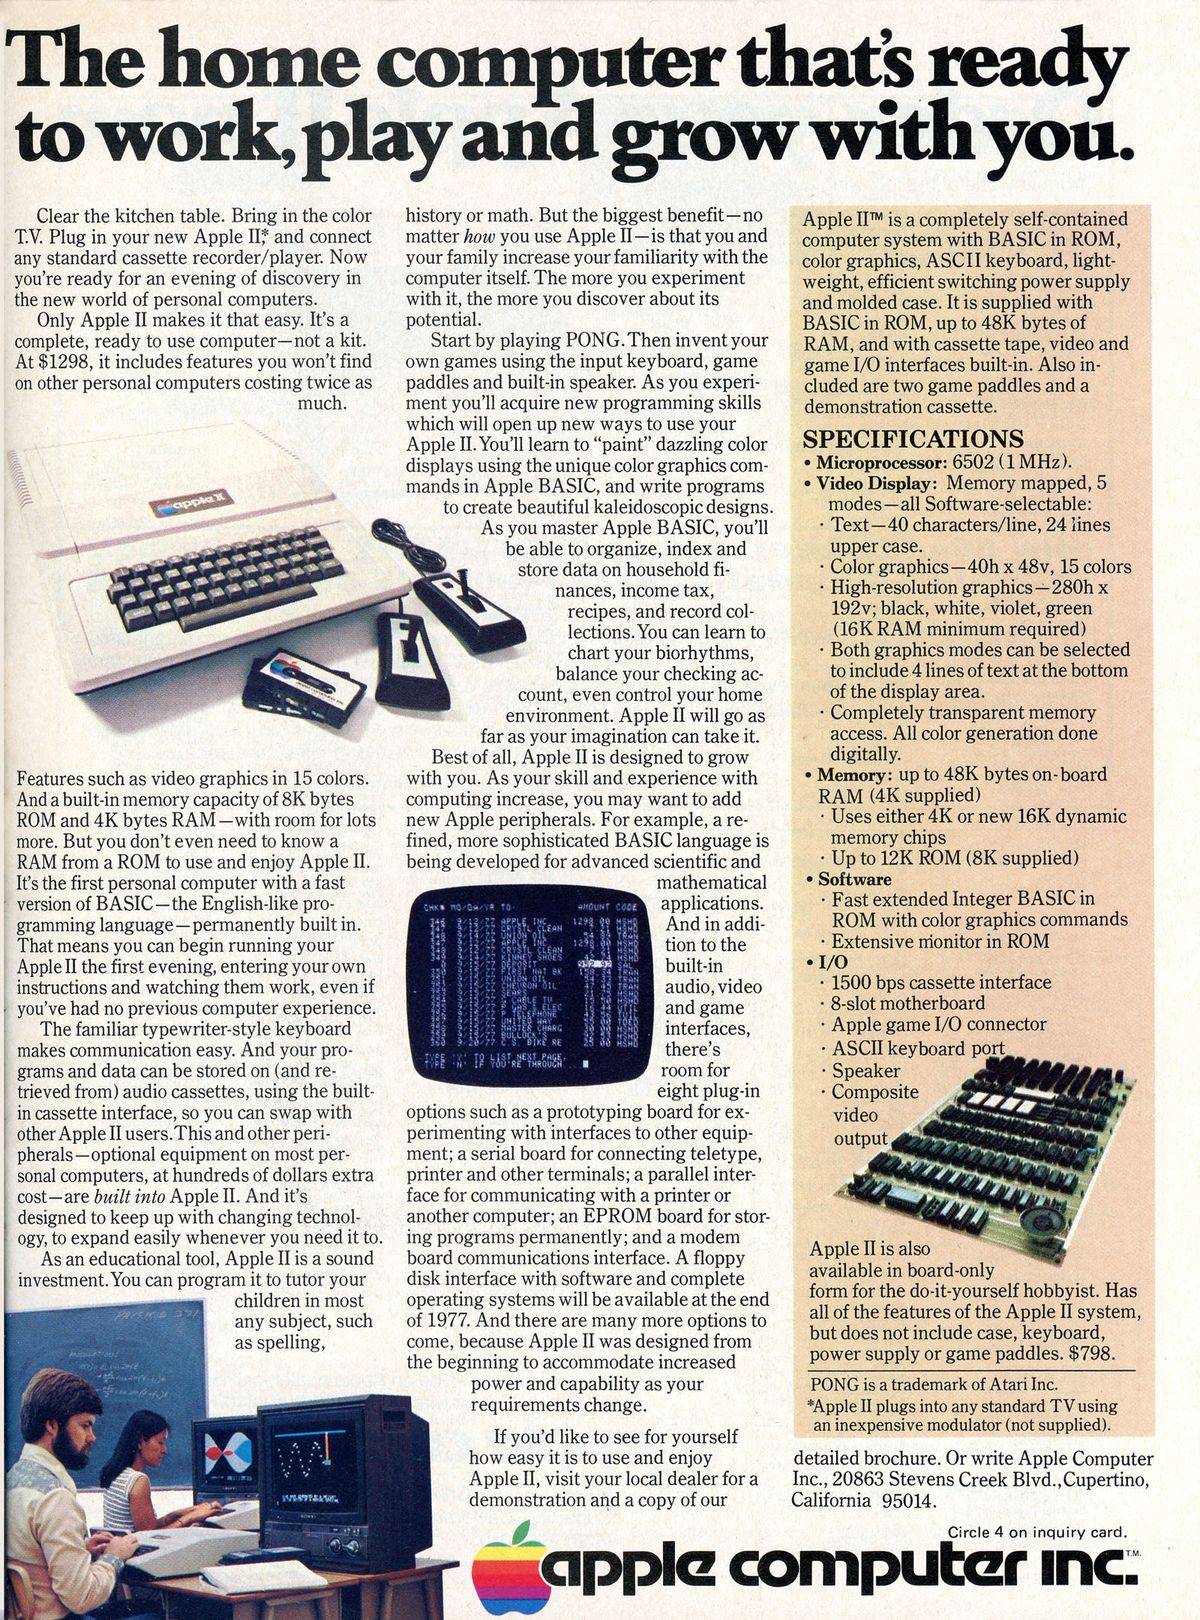 apple II ad from 1977